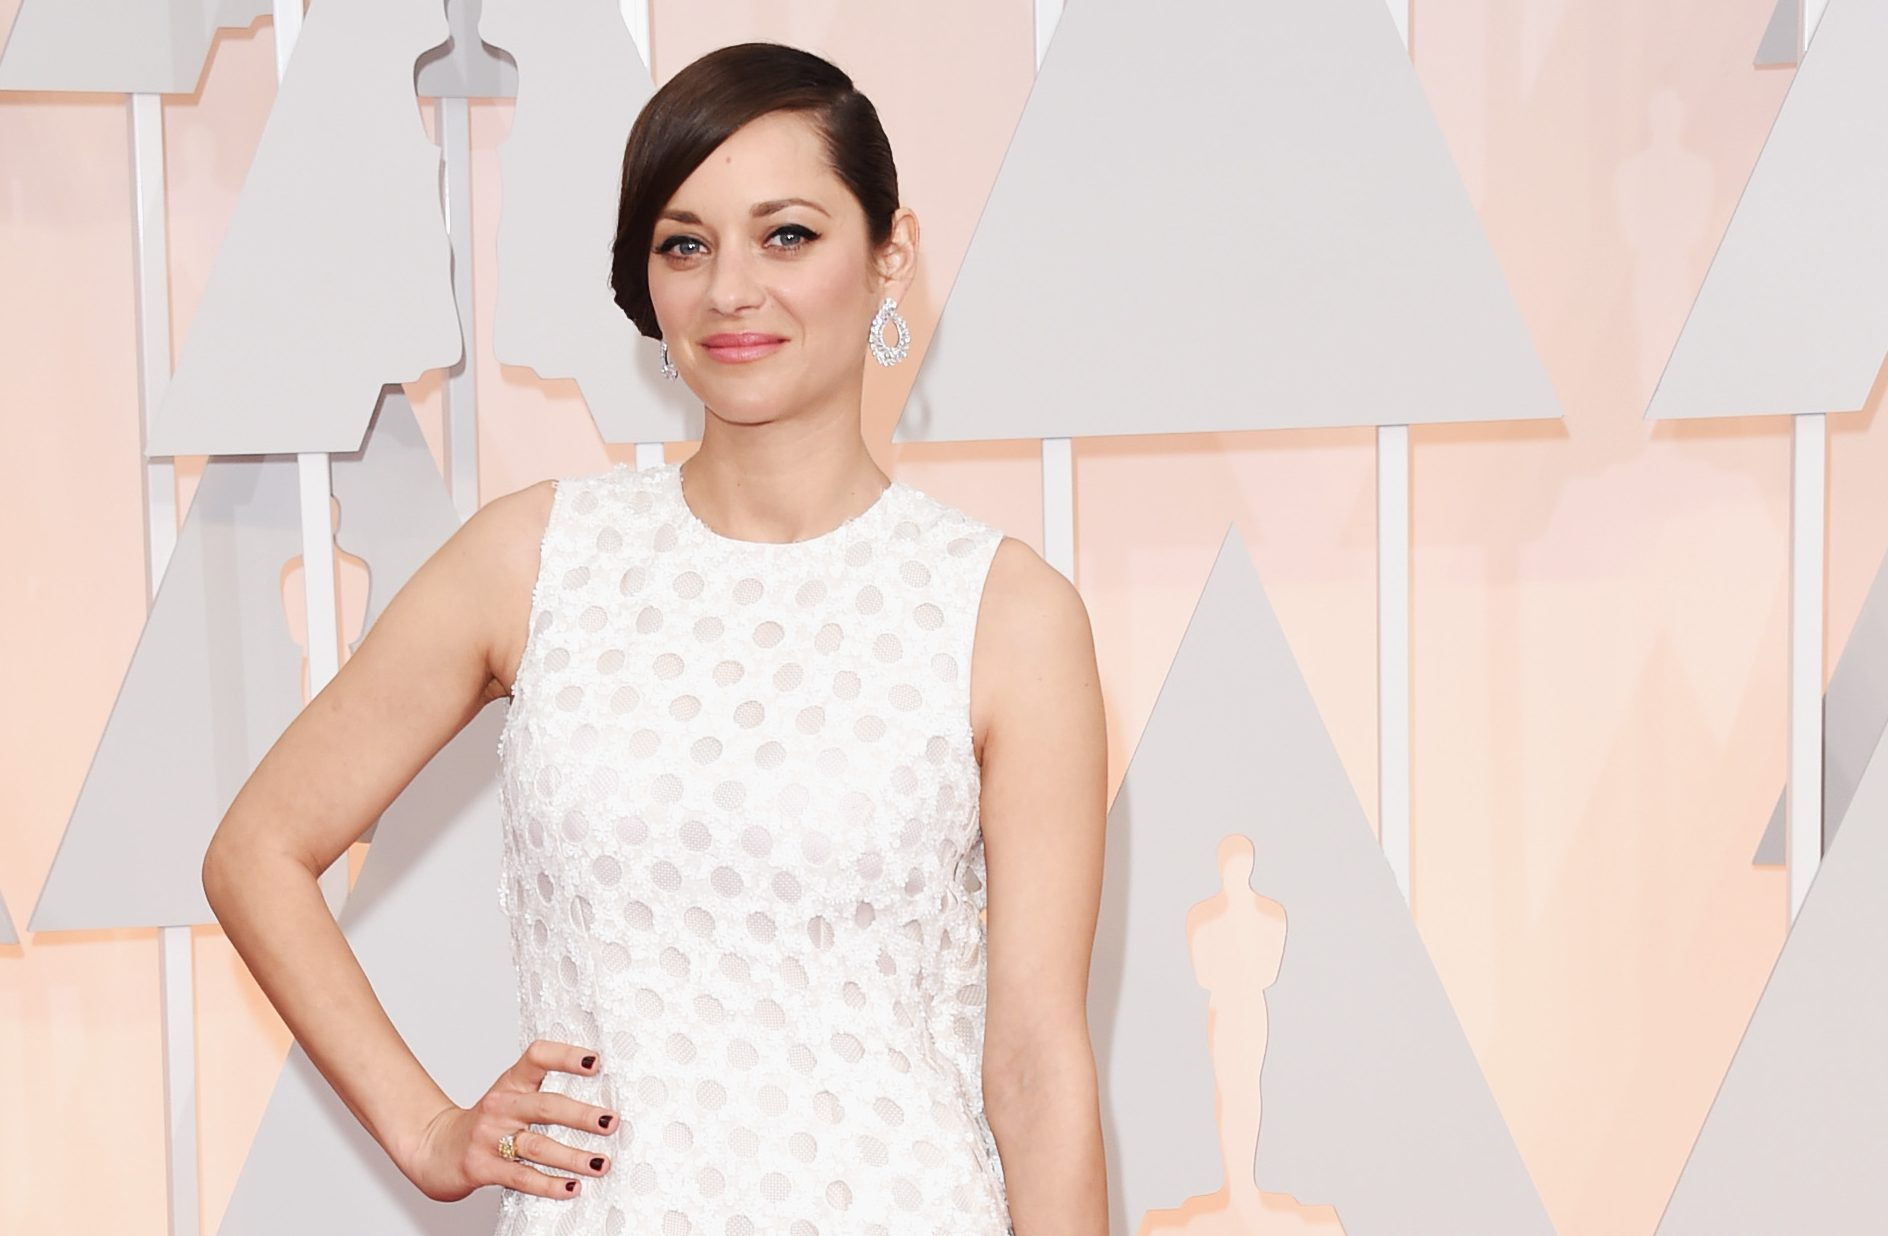 Marion Cotillard confirms pregnancy as she breaks her silence over Brad Pitt affair rumours